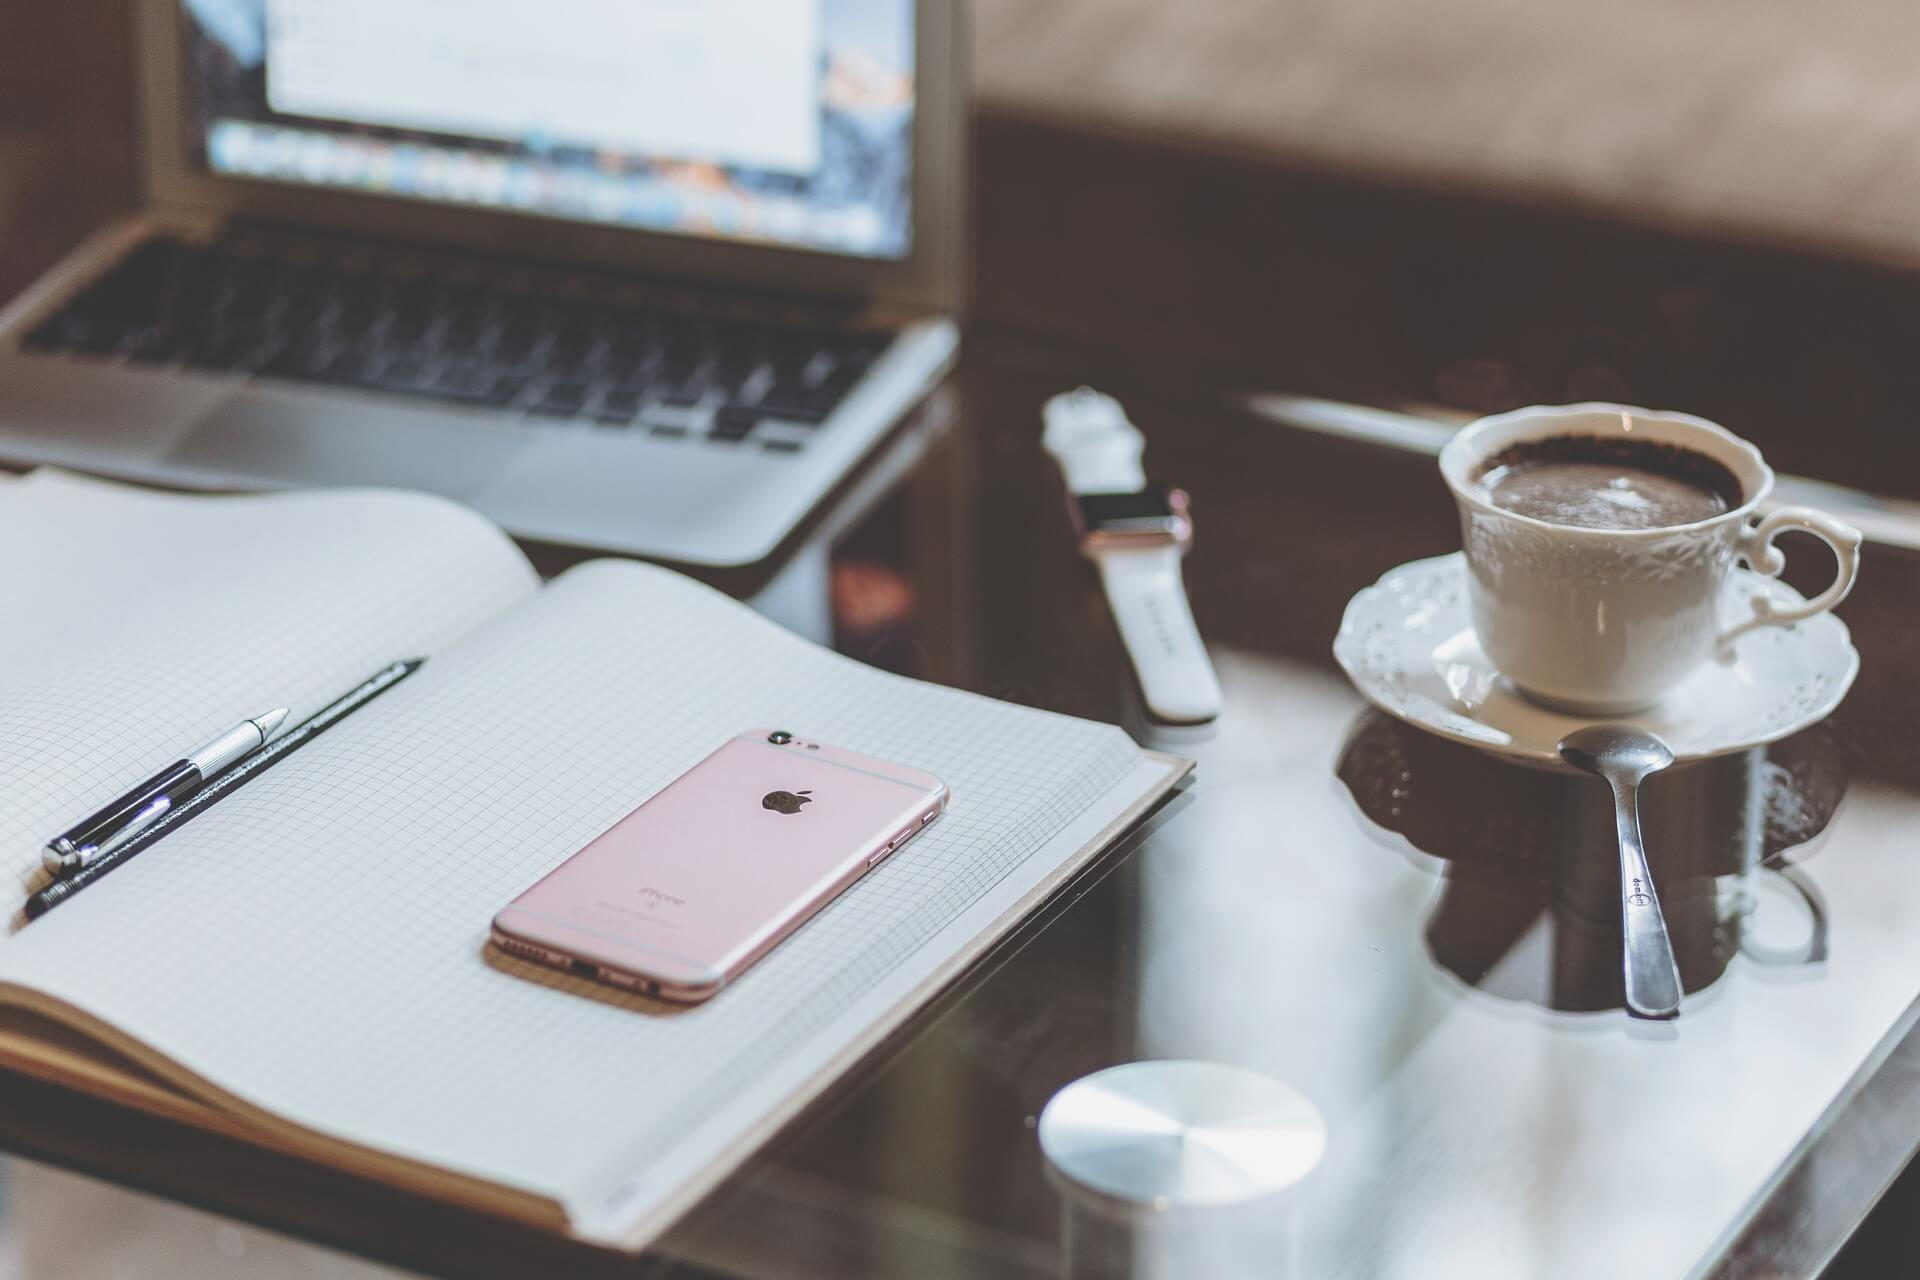 apple-ipad-2-3